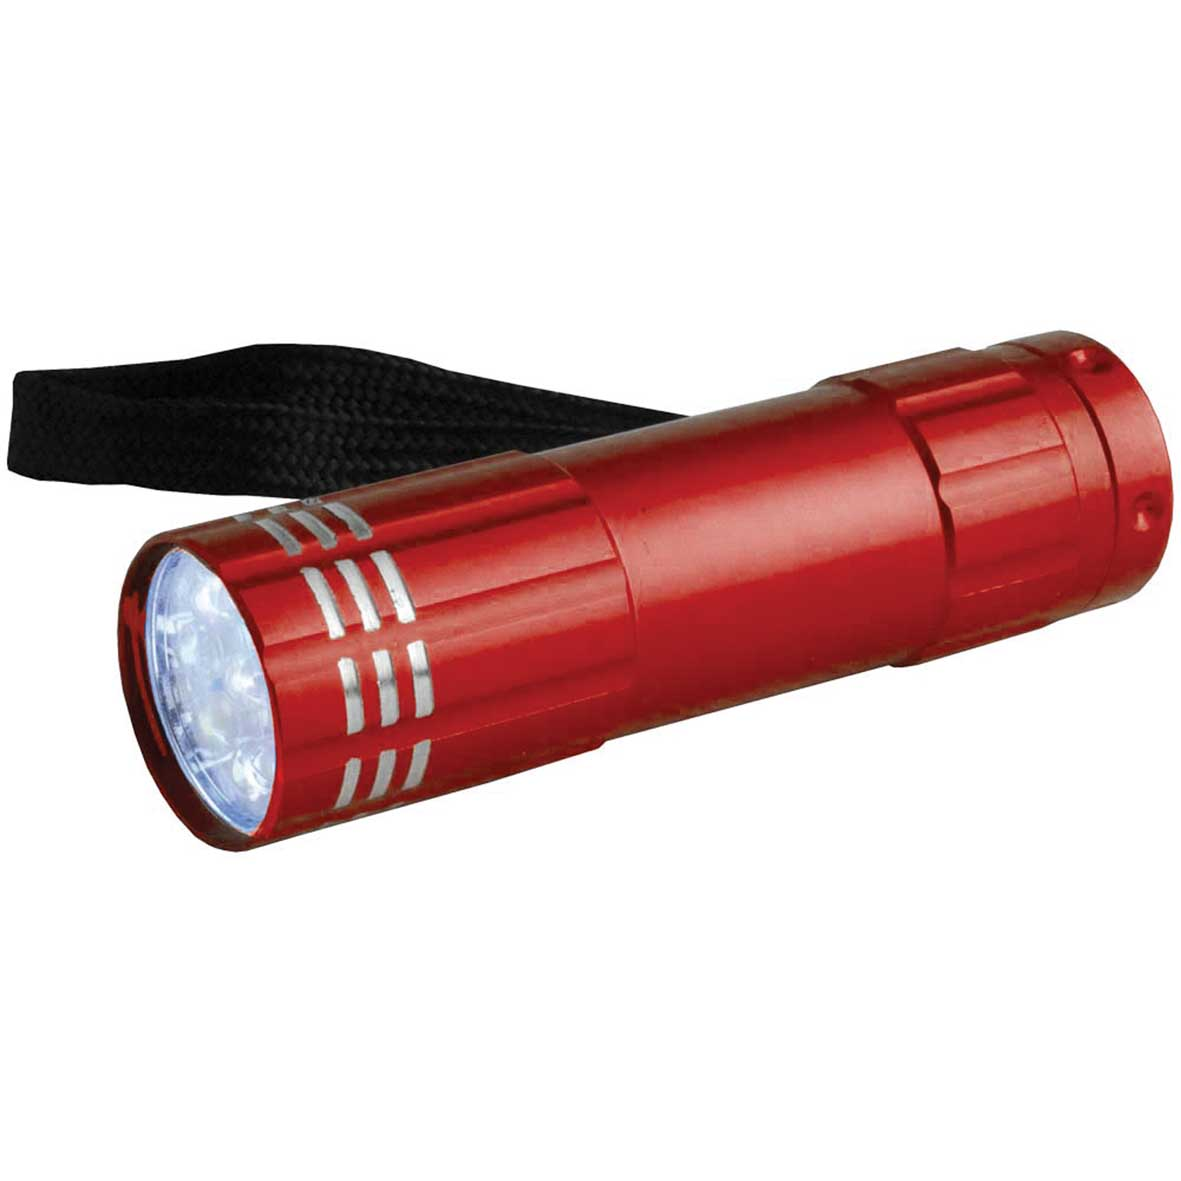 Aluminium torch with 9 LED lights - Red sip-0941203